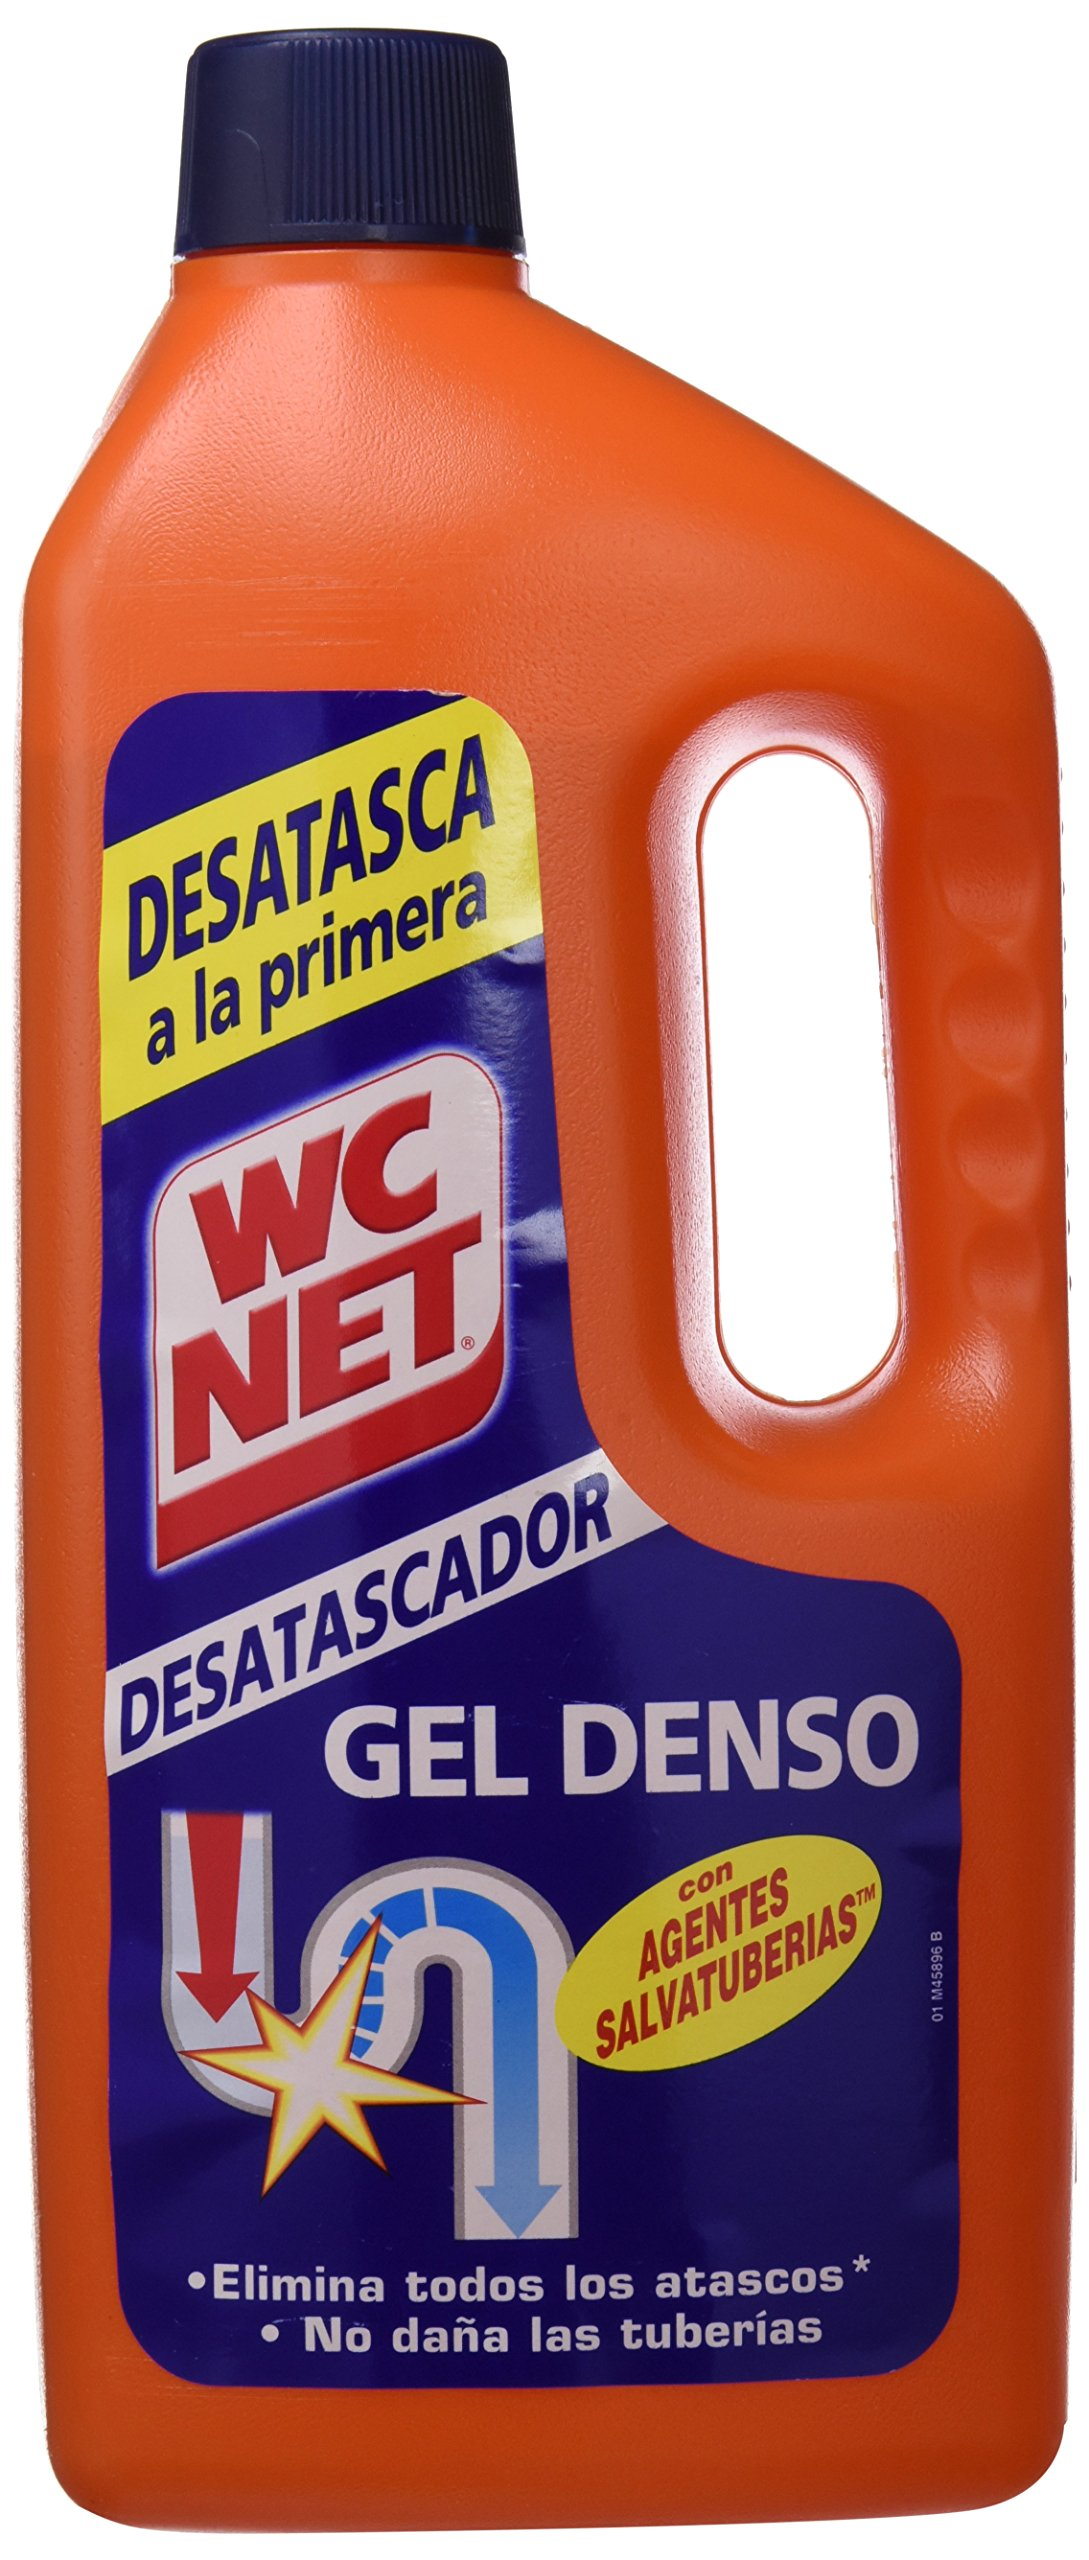 Wc Net Desatascador Energy - 1000 gr product image